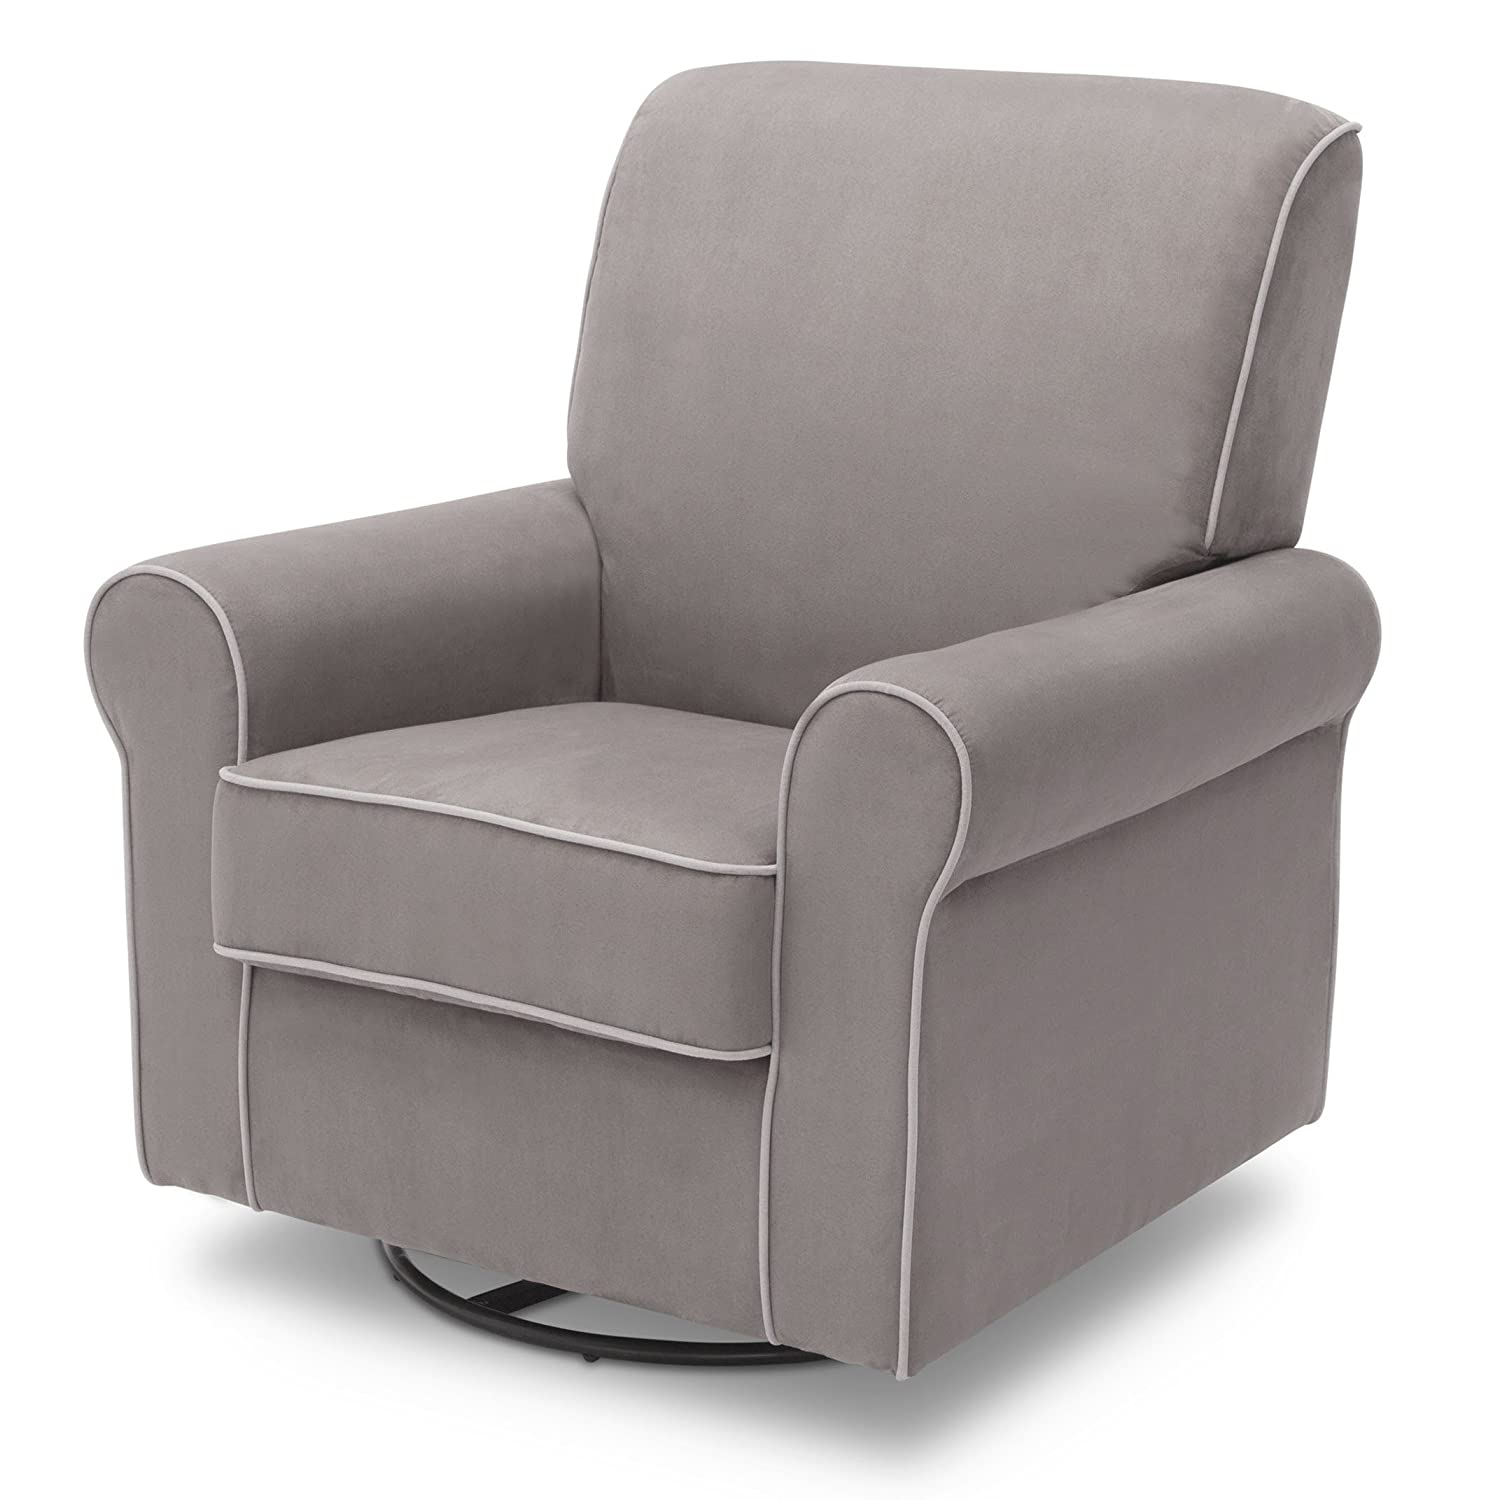 Delta Children Rowen Glider Swivel Rocker Chair, Dove Grey